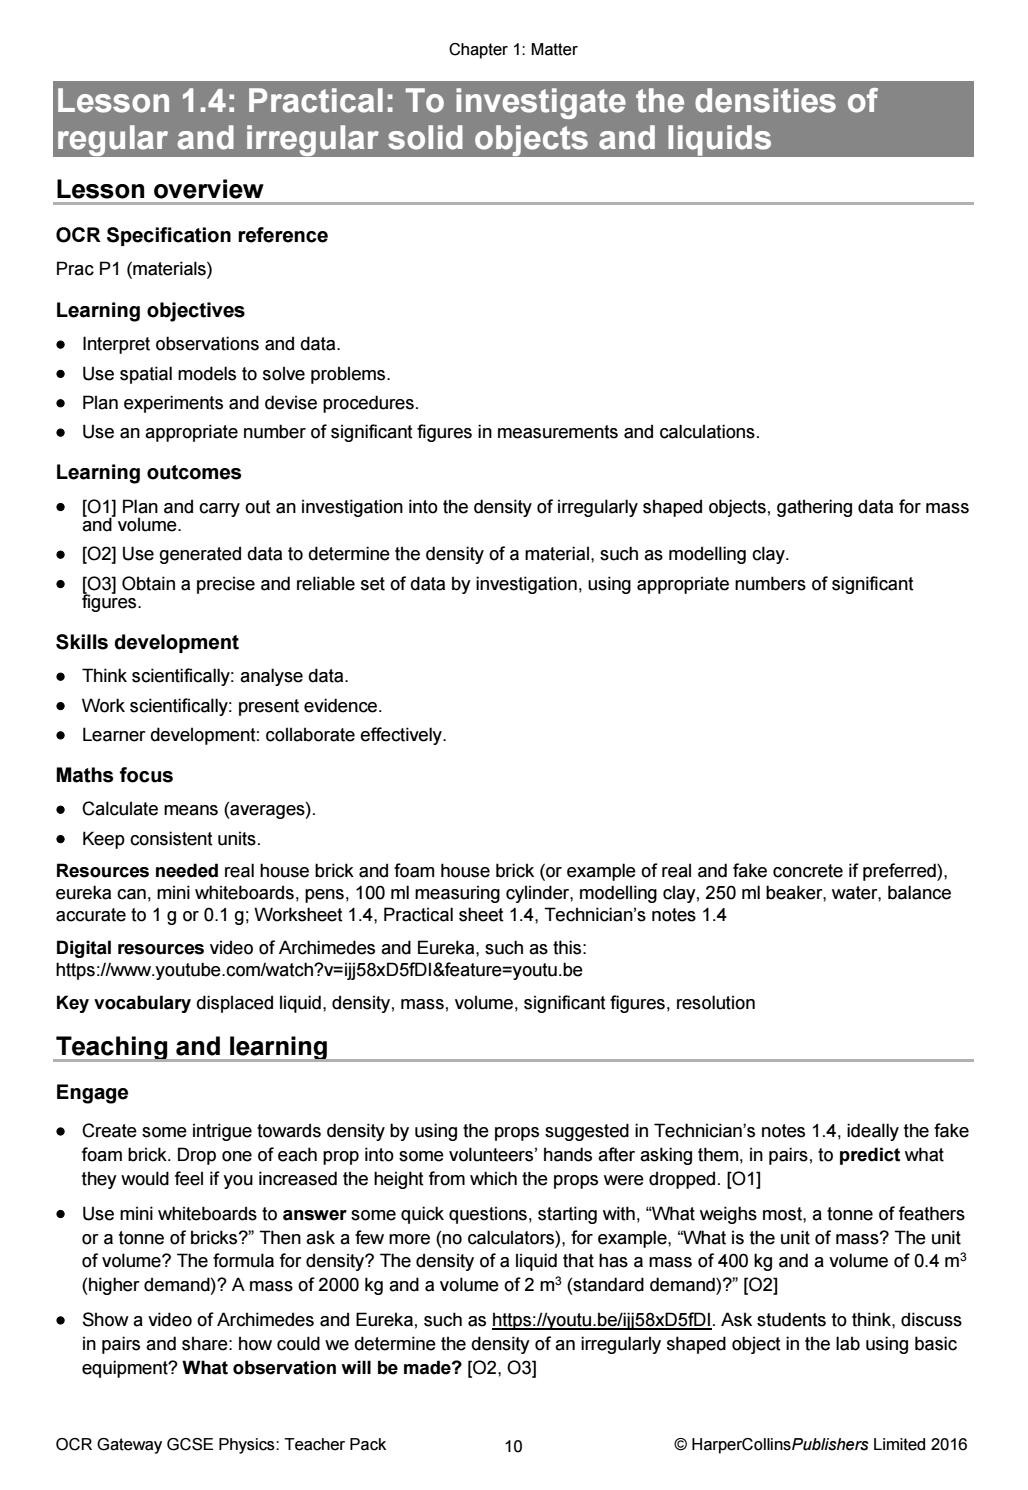 30 Calculations Using Significant Figures Worksheet